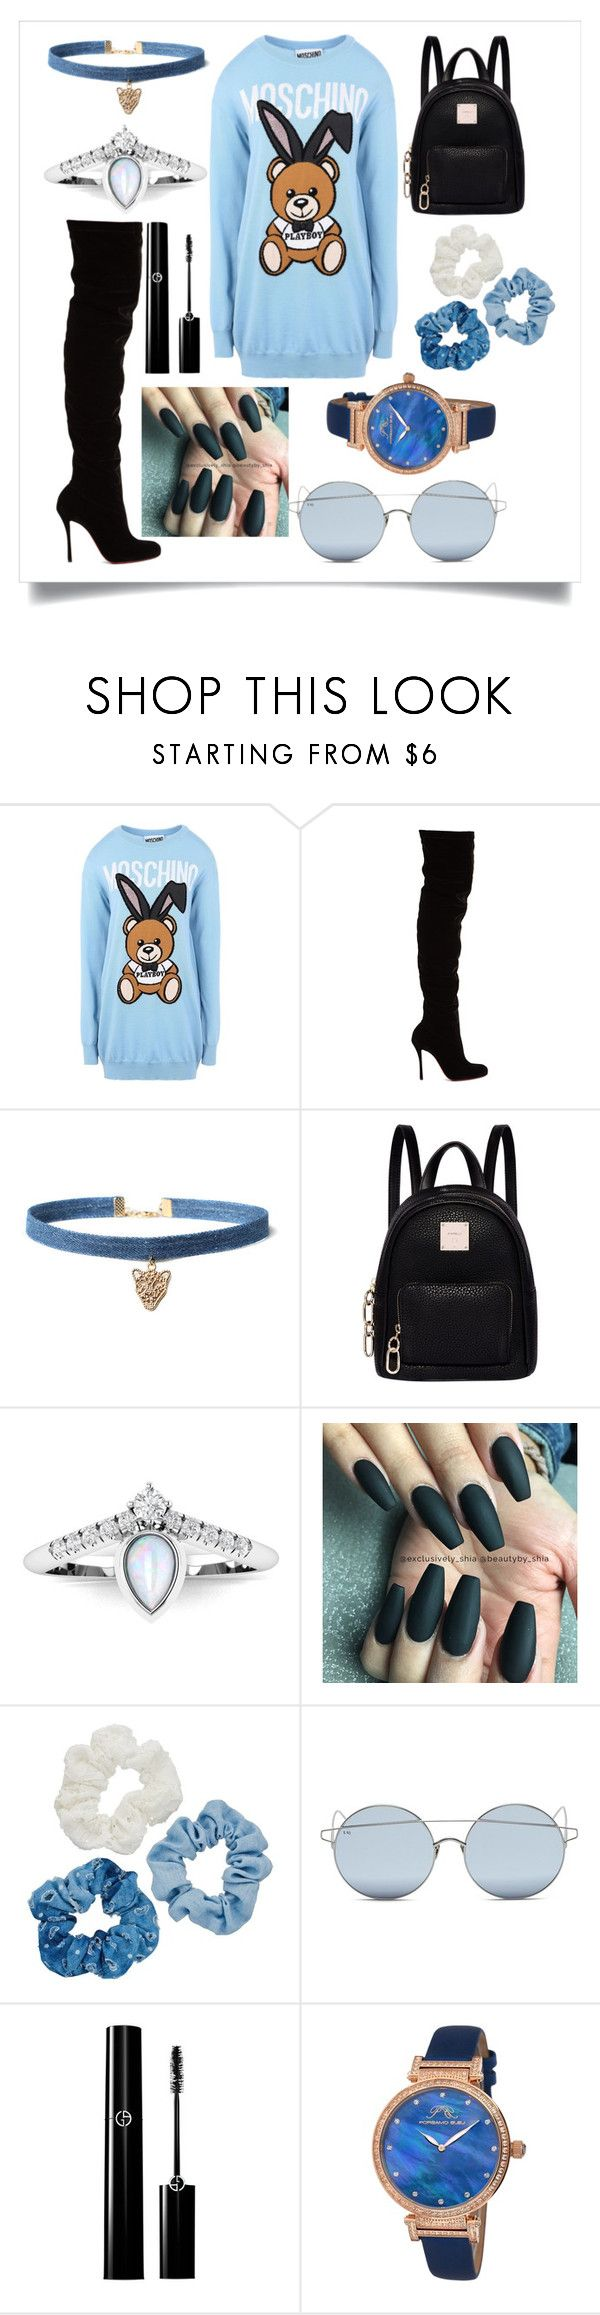 """Untitled #1314"" by fashionqueen886 ❤ liked on Polyvore featuring Moschino, Christian Louboutin, WithChic, Fiorelli, Mudd, For Art's Sake and Porsamo Bleu"